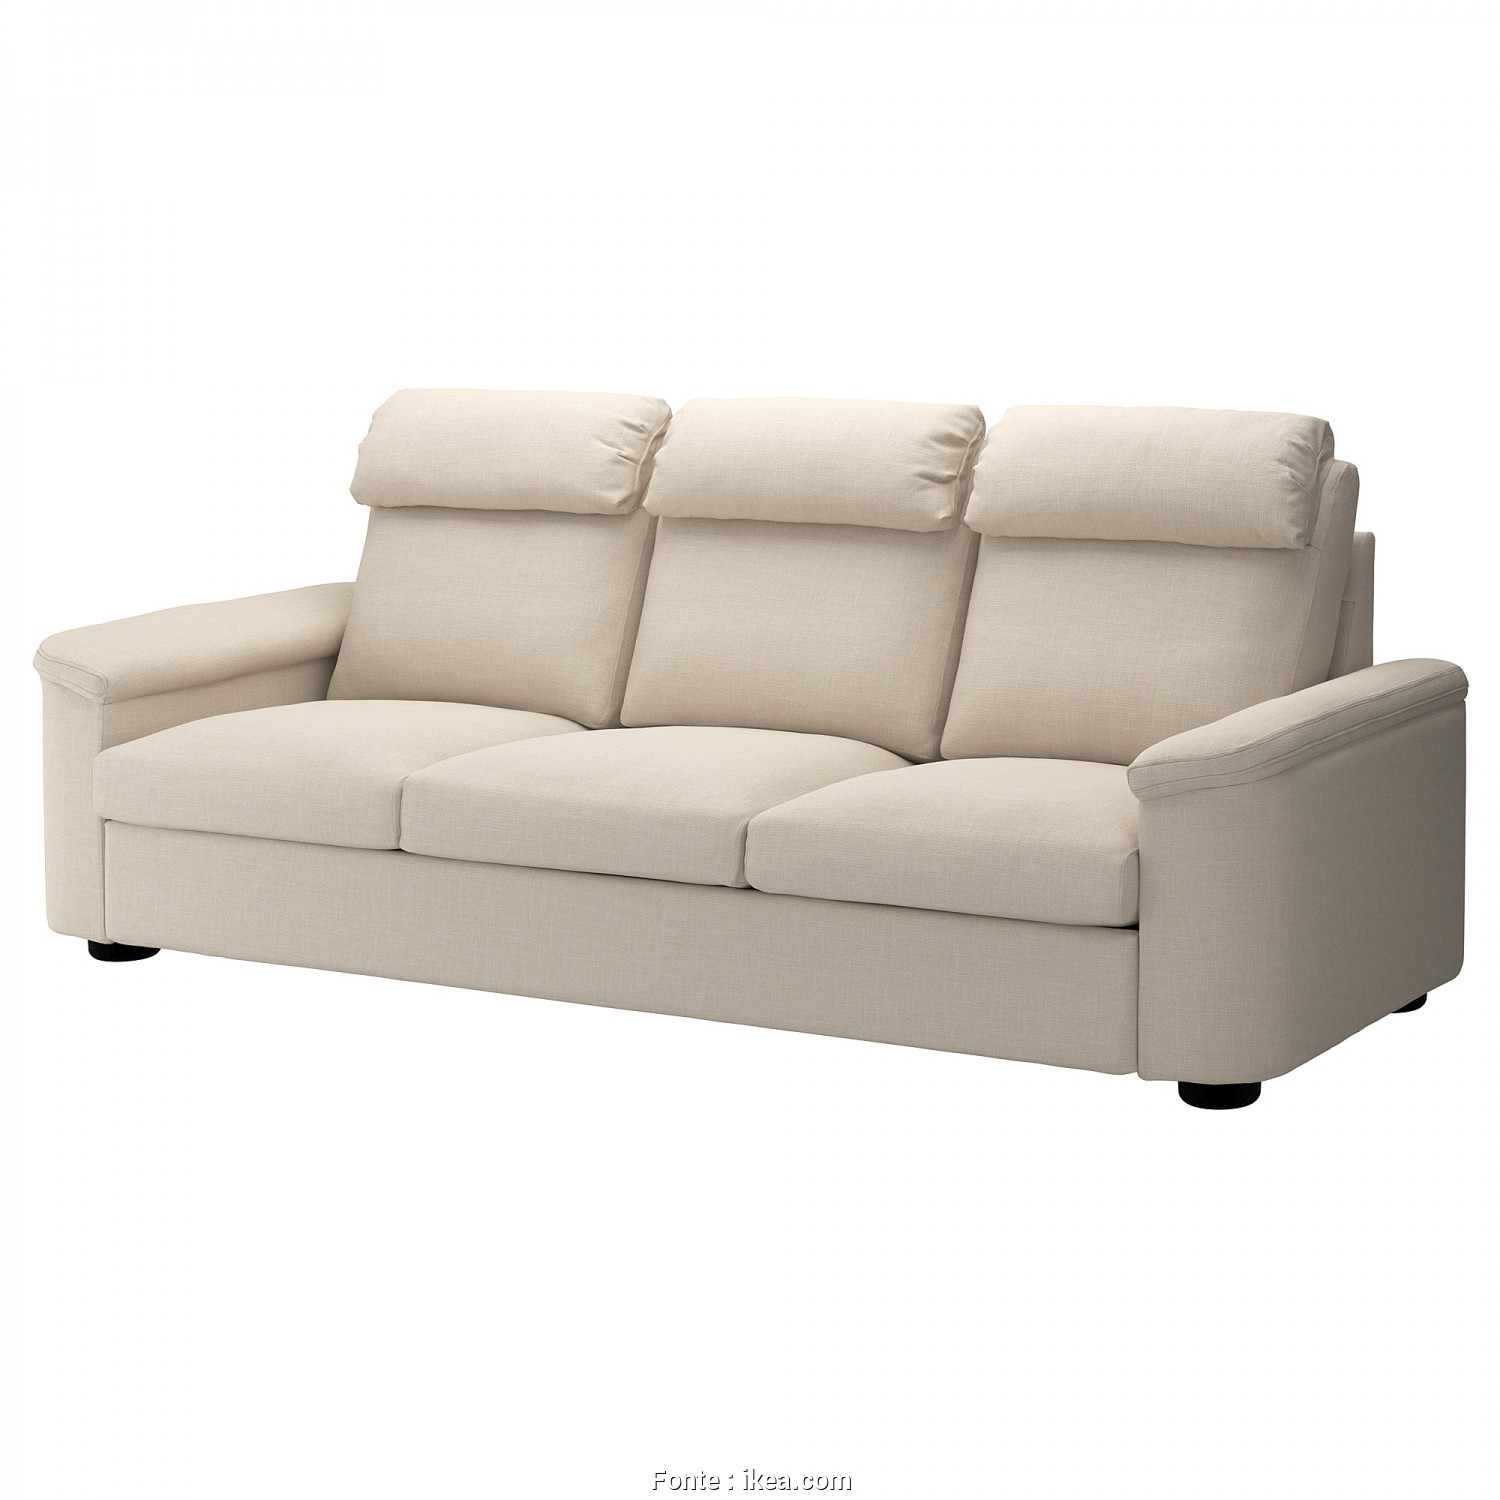 Ikea Klippan 3 Seater Sofa Dimensions, Incredibile IKEA LIDHULT 3-Seat Sofa, Cover Is Easy To Keep Clean Since It Is